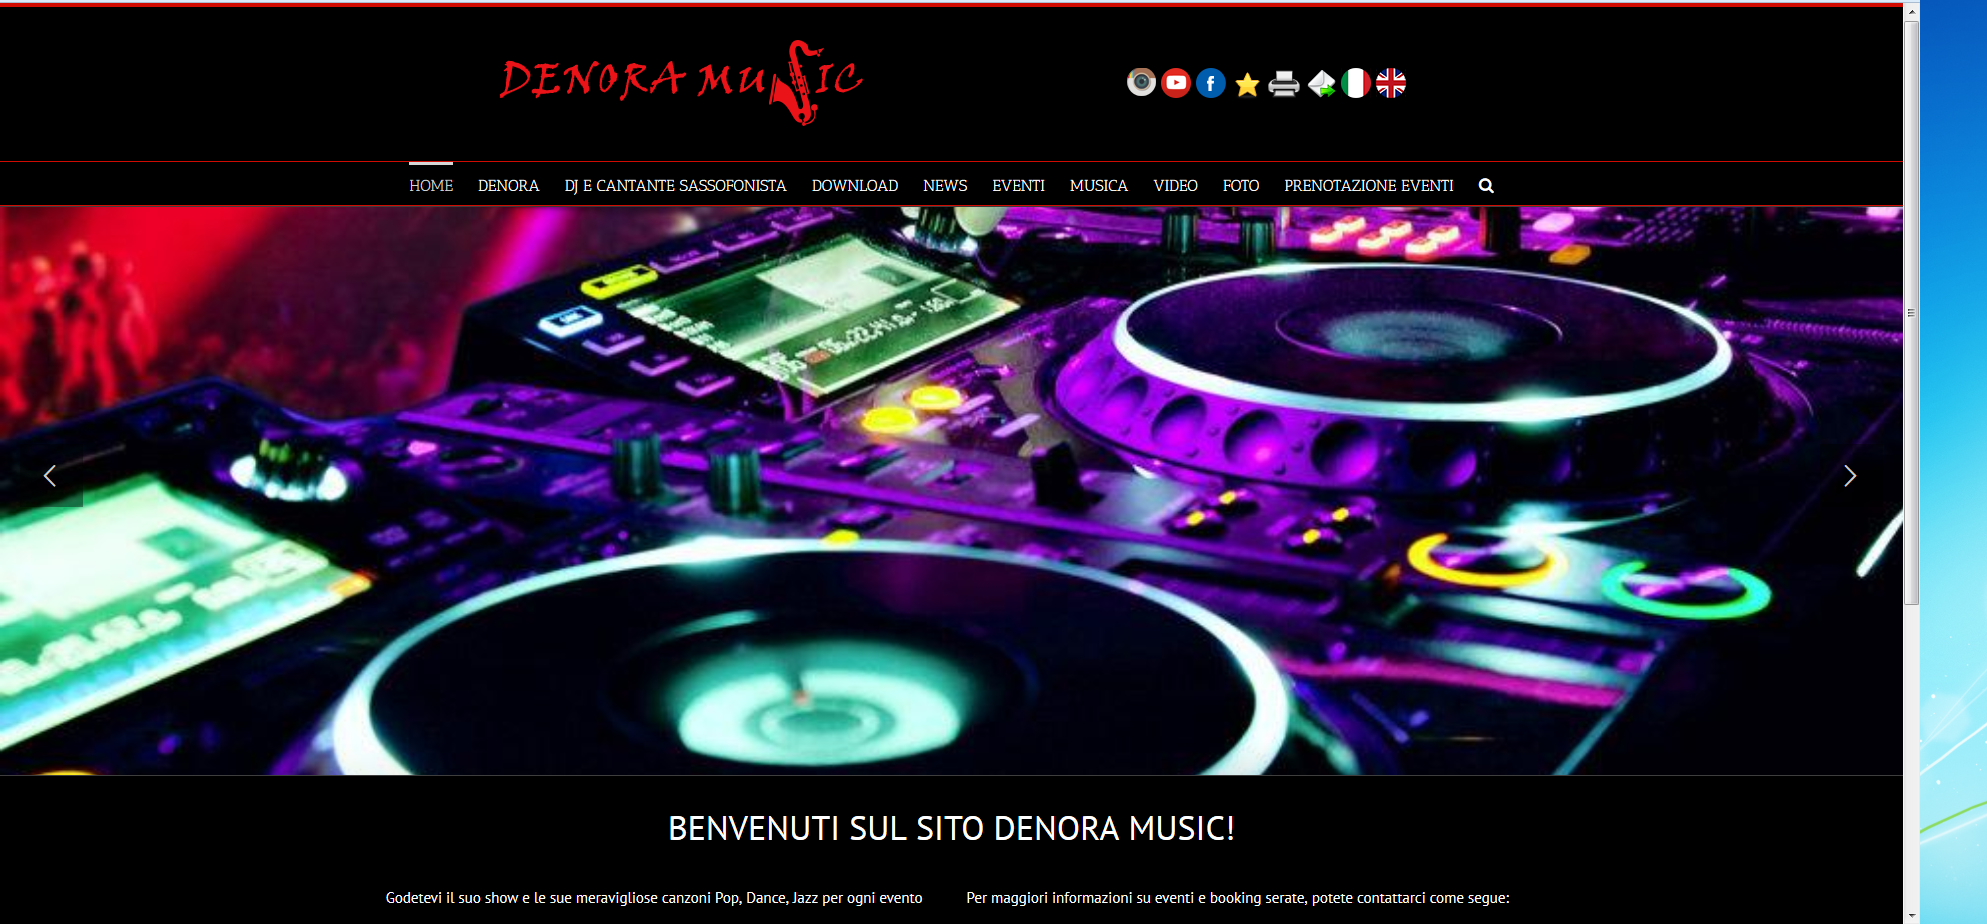 DENORAMUSIC.COM